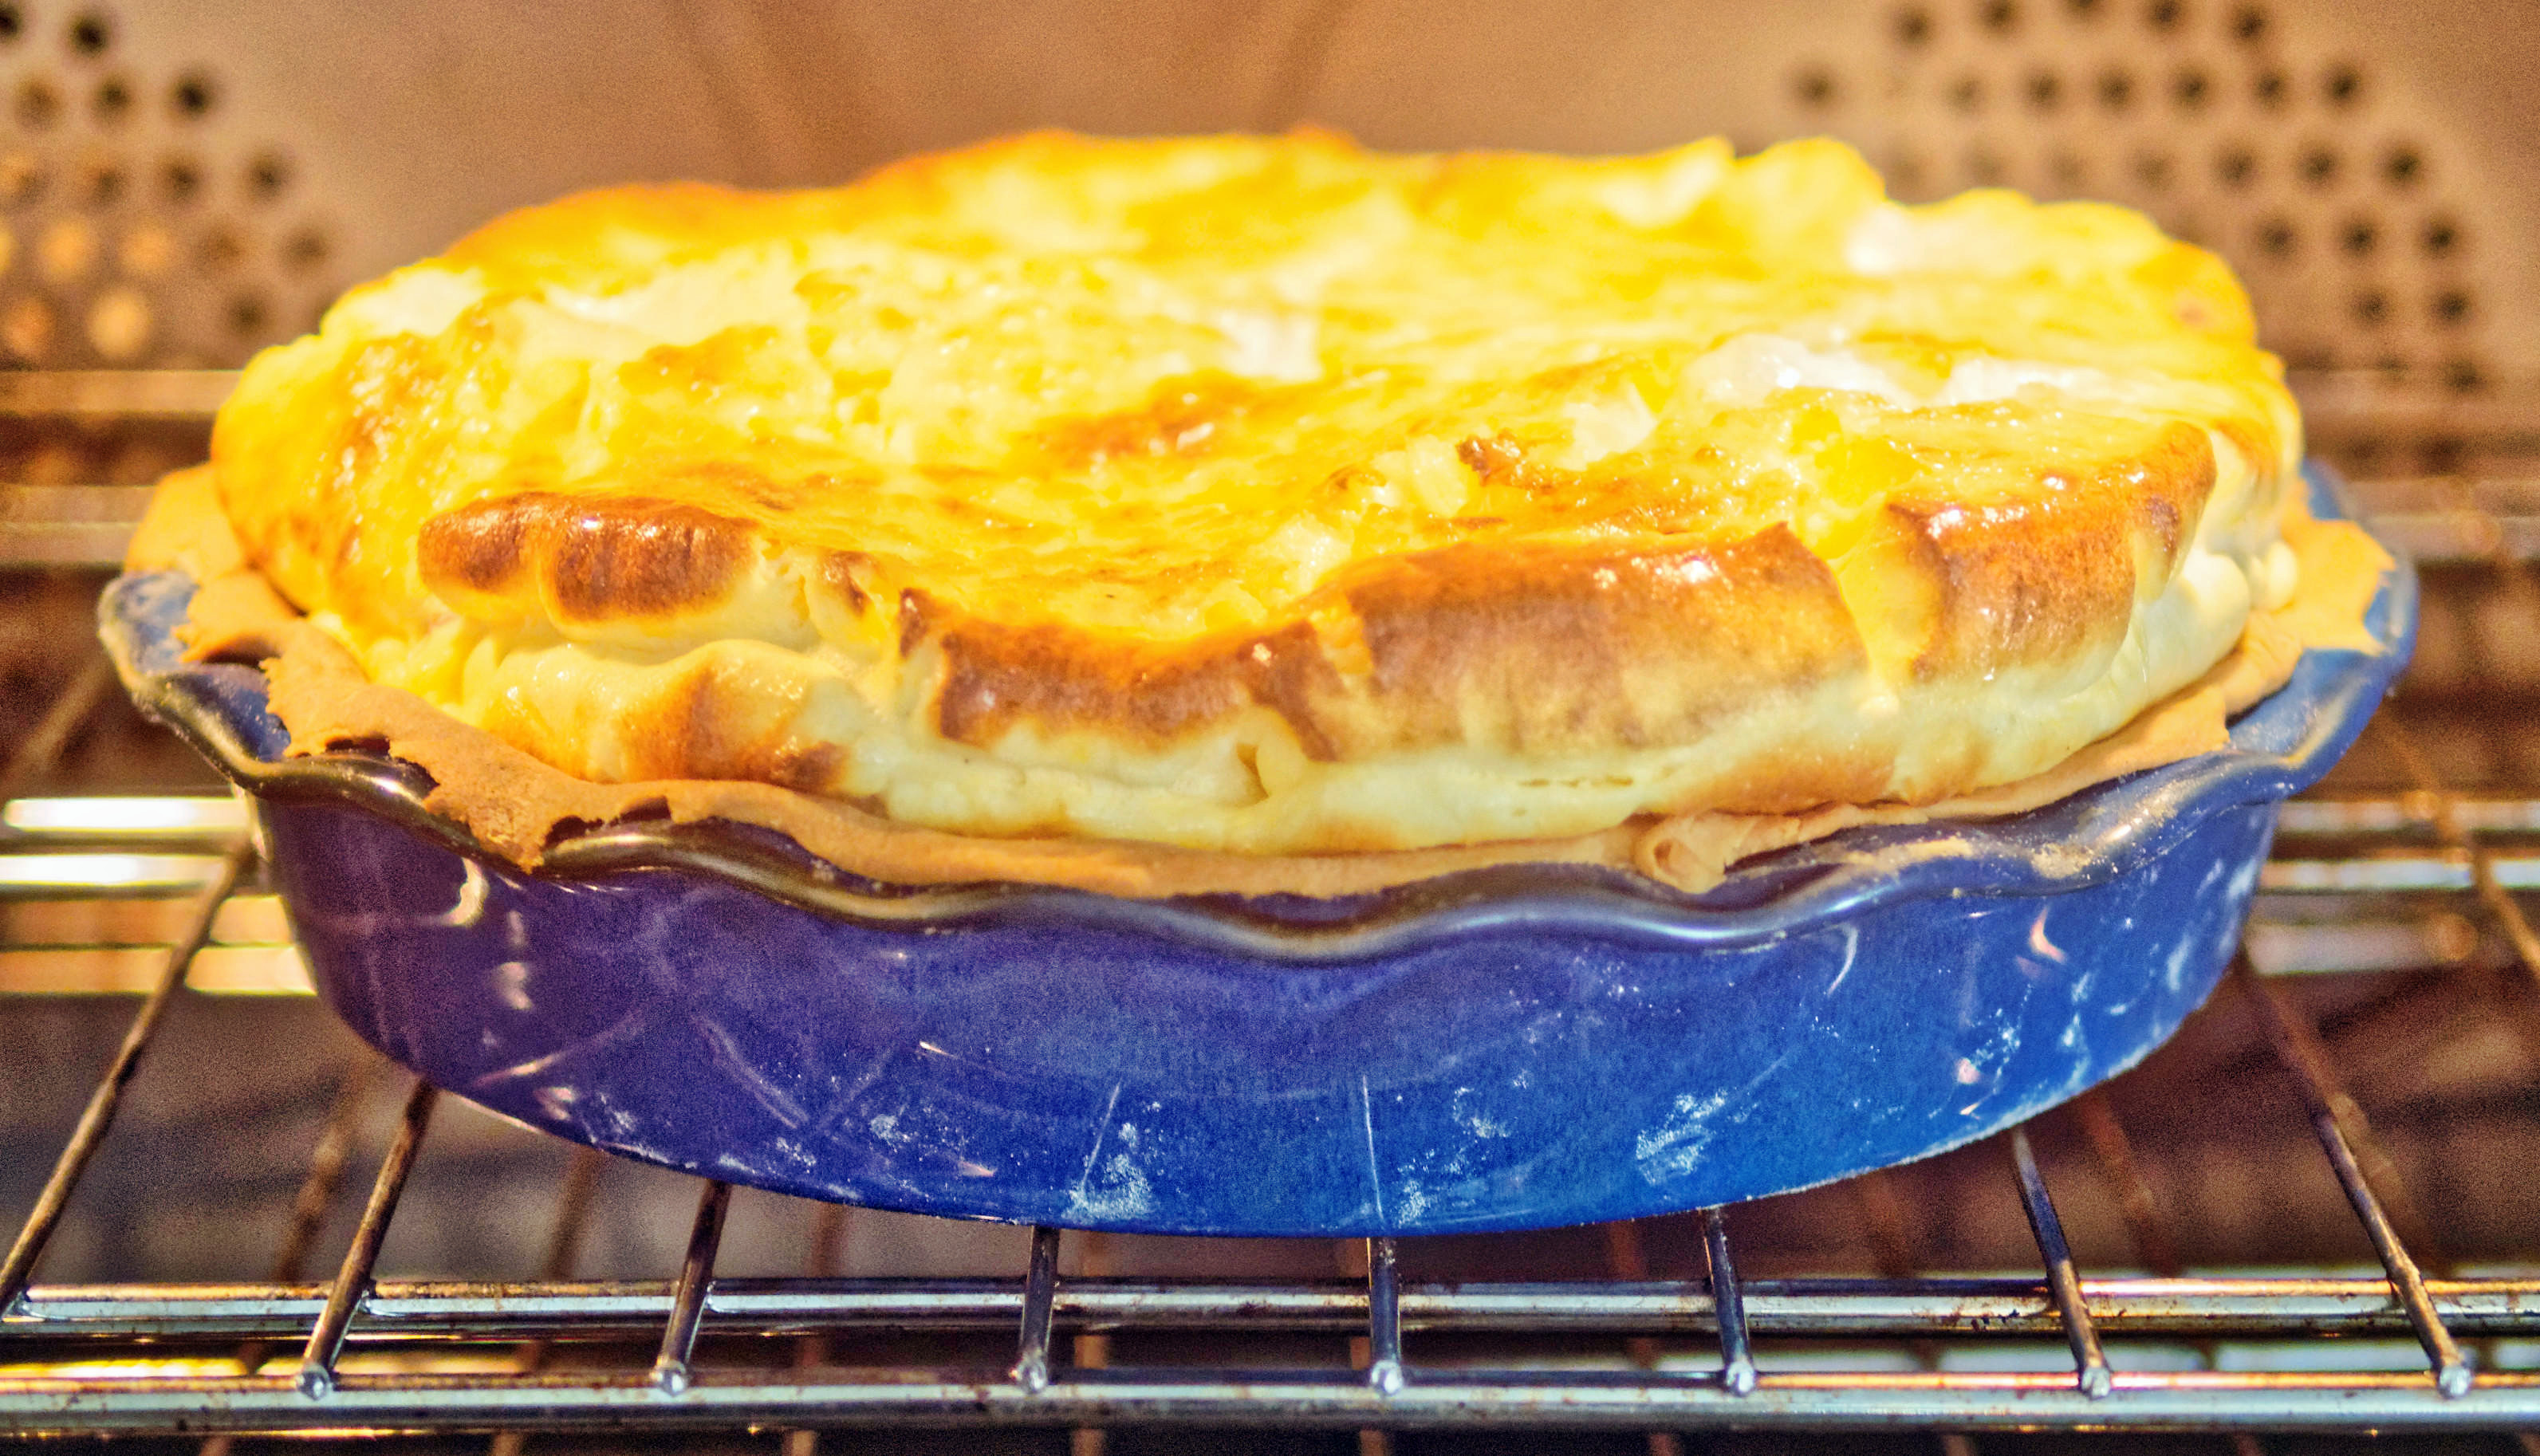 This should be Quiche-lorraine-2.jpeg.  Is it missing?